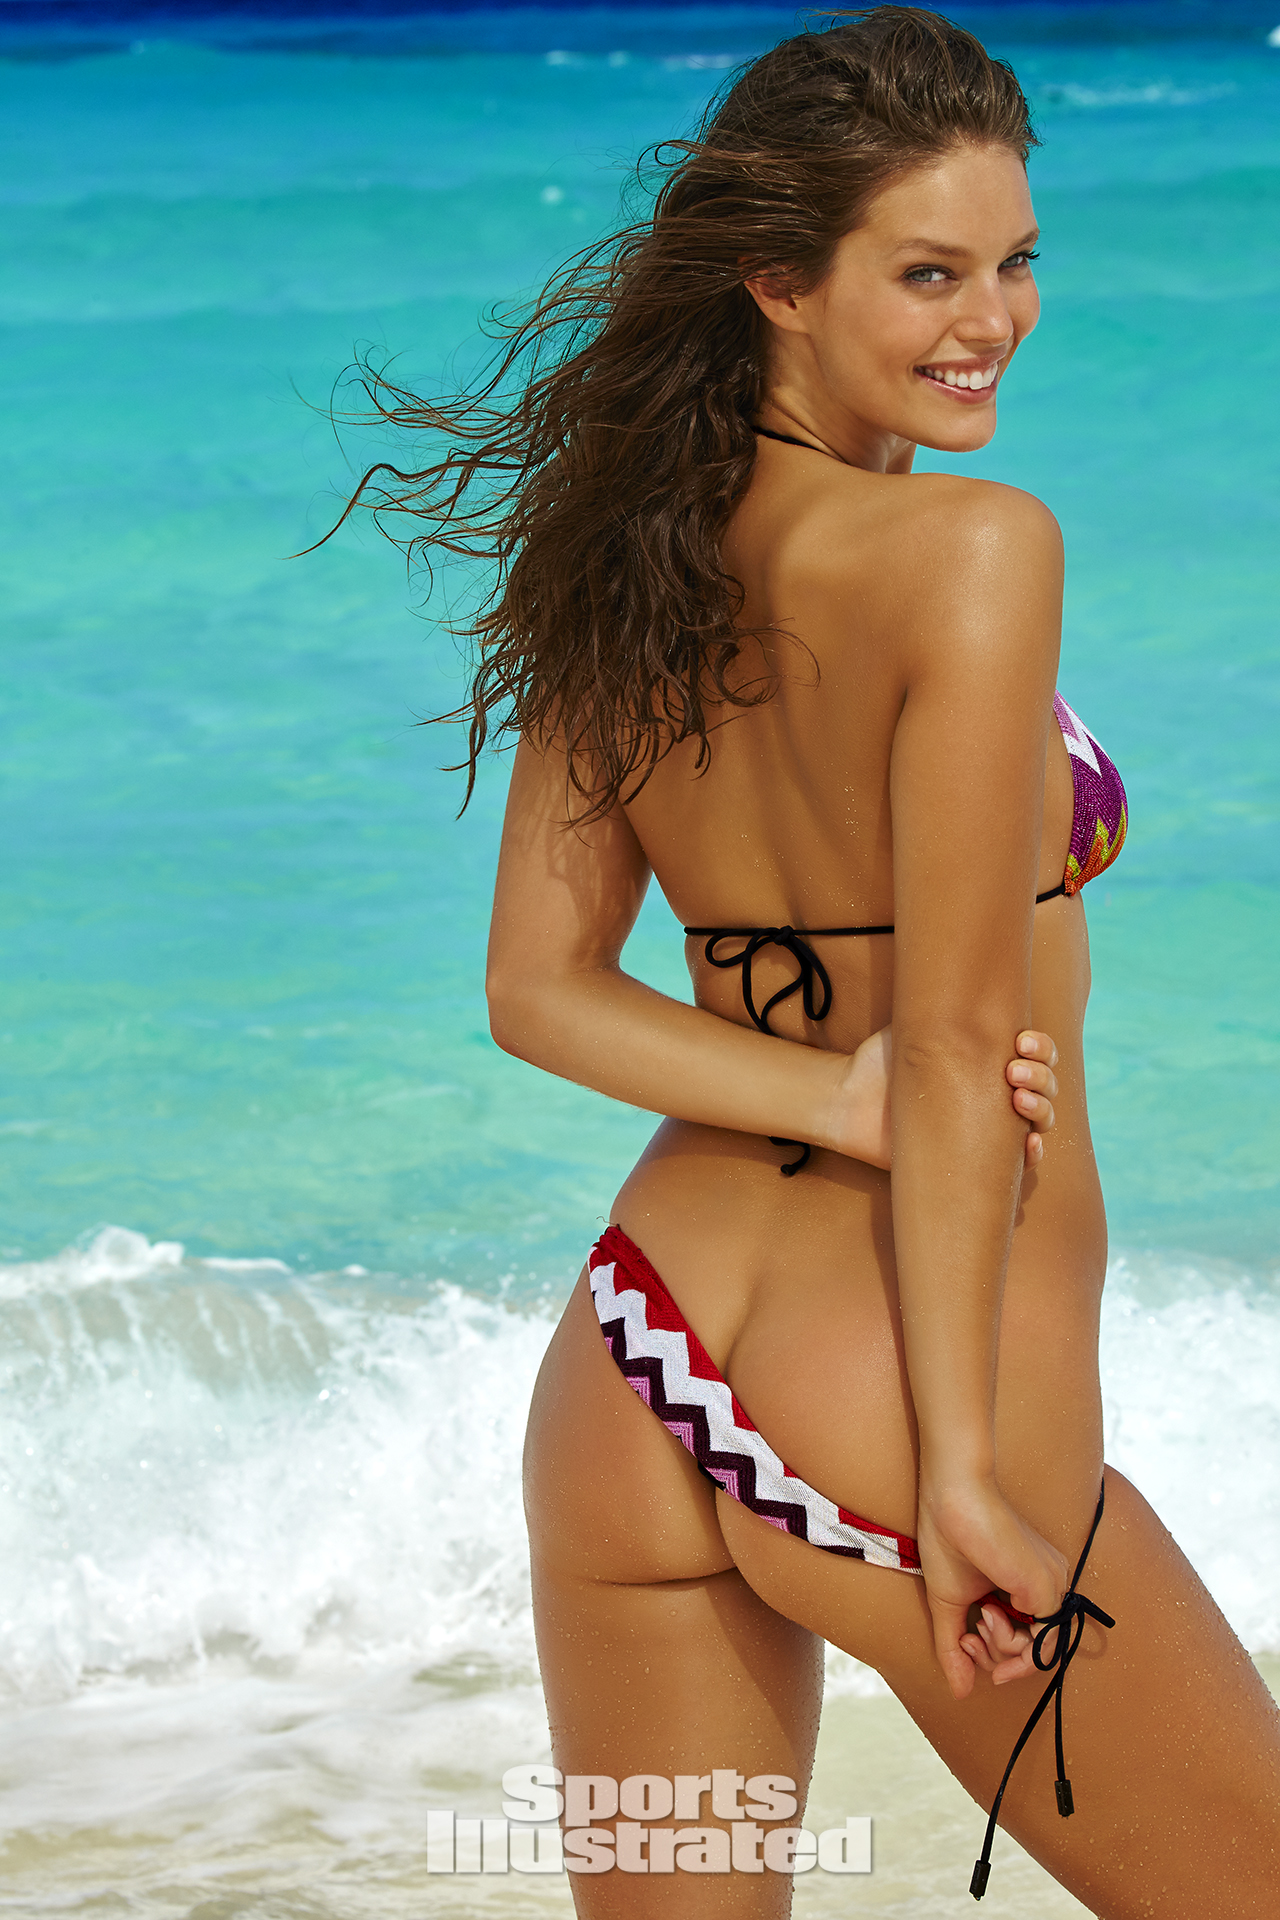 Emily DiDonato was photographed by James Macari in Turks & Caicos. Swimsuit by Missoni.